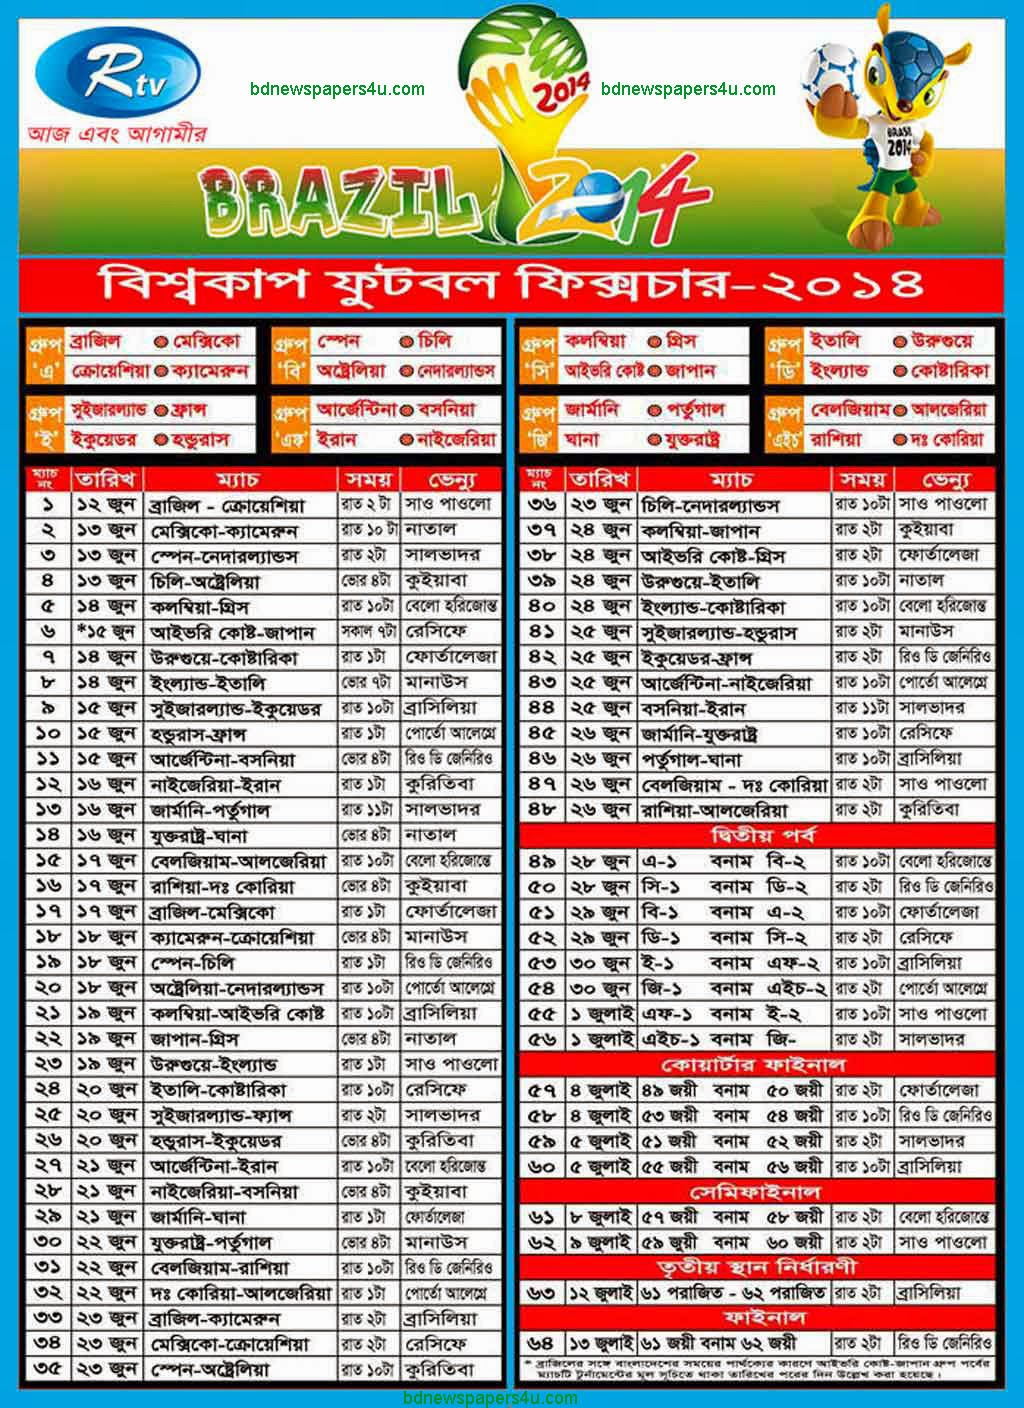 World cup 2014 Brazil Schedule/Fixtures & Bangladeshi Time Table ...